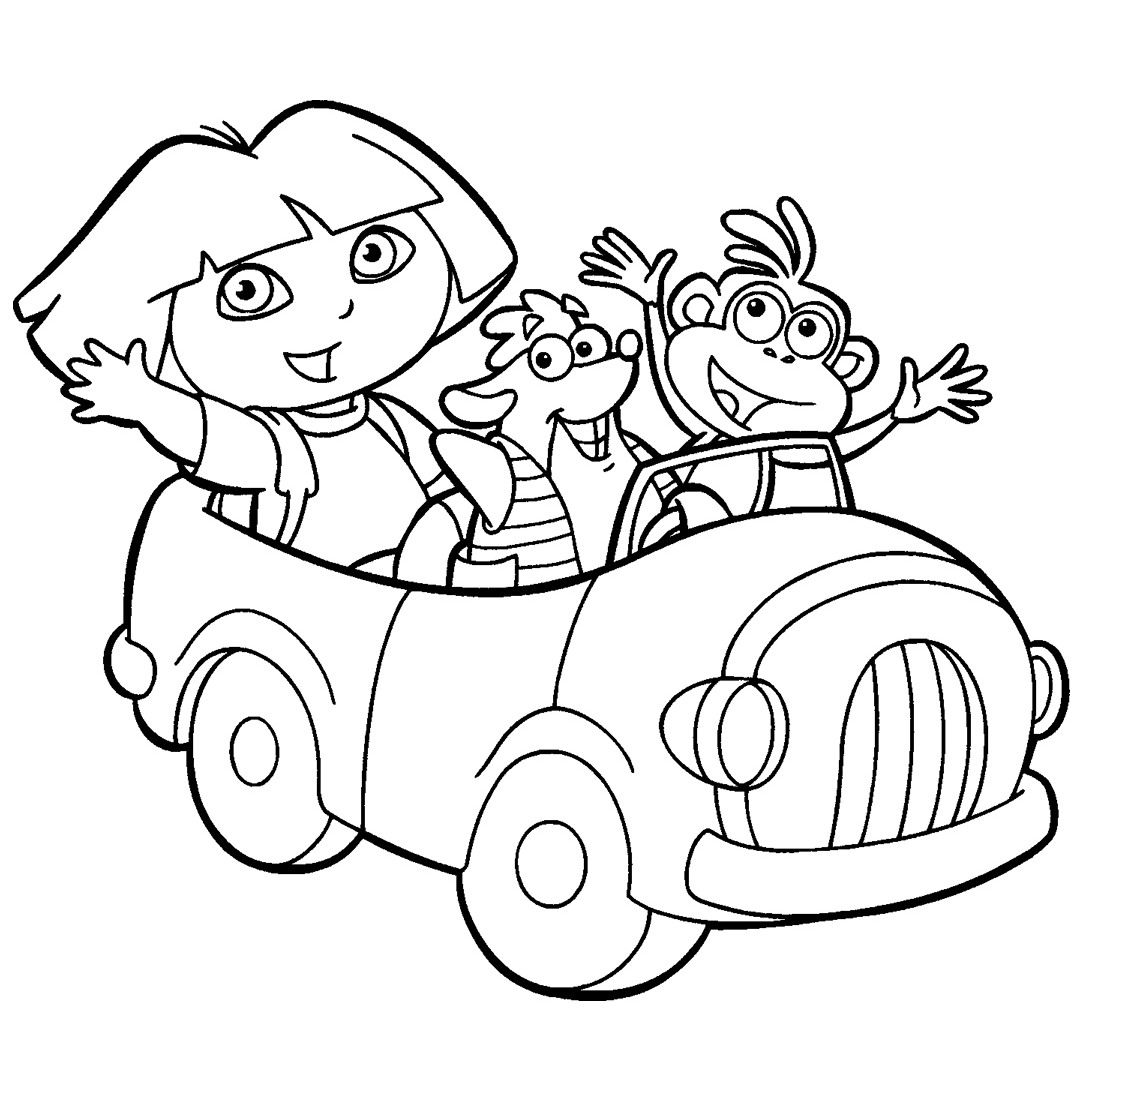 1139x1099 Dora The Explorer Coloring Pages Dzieci